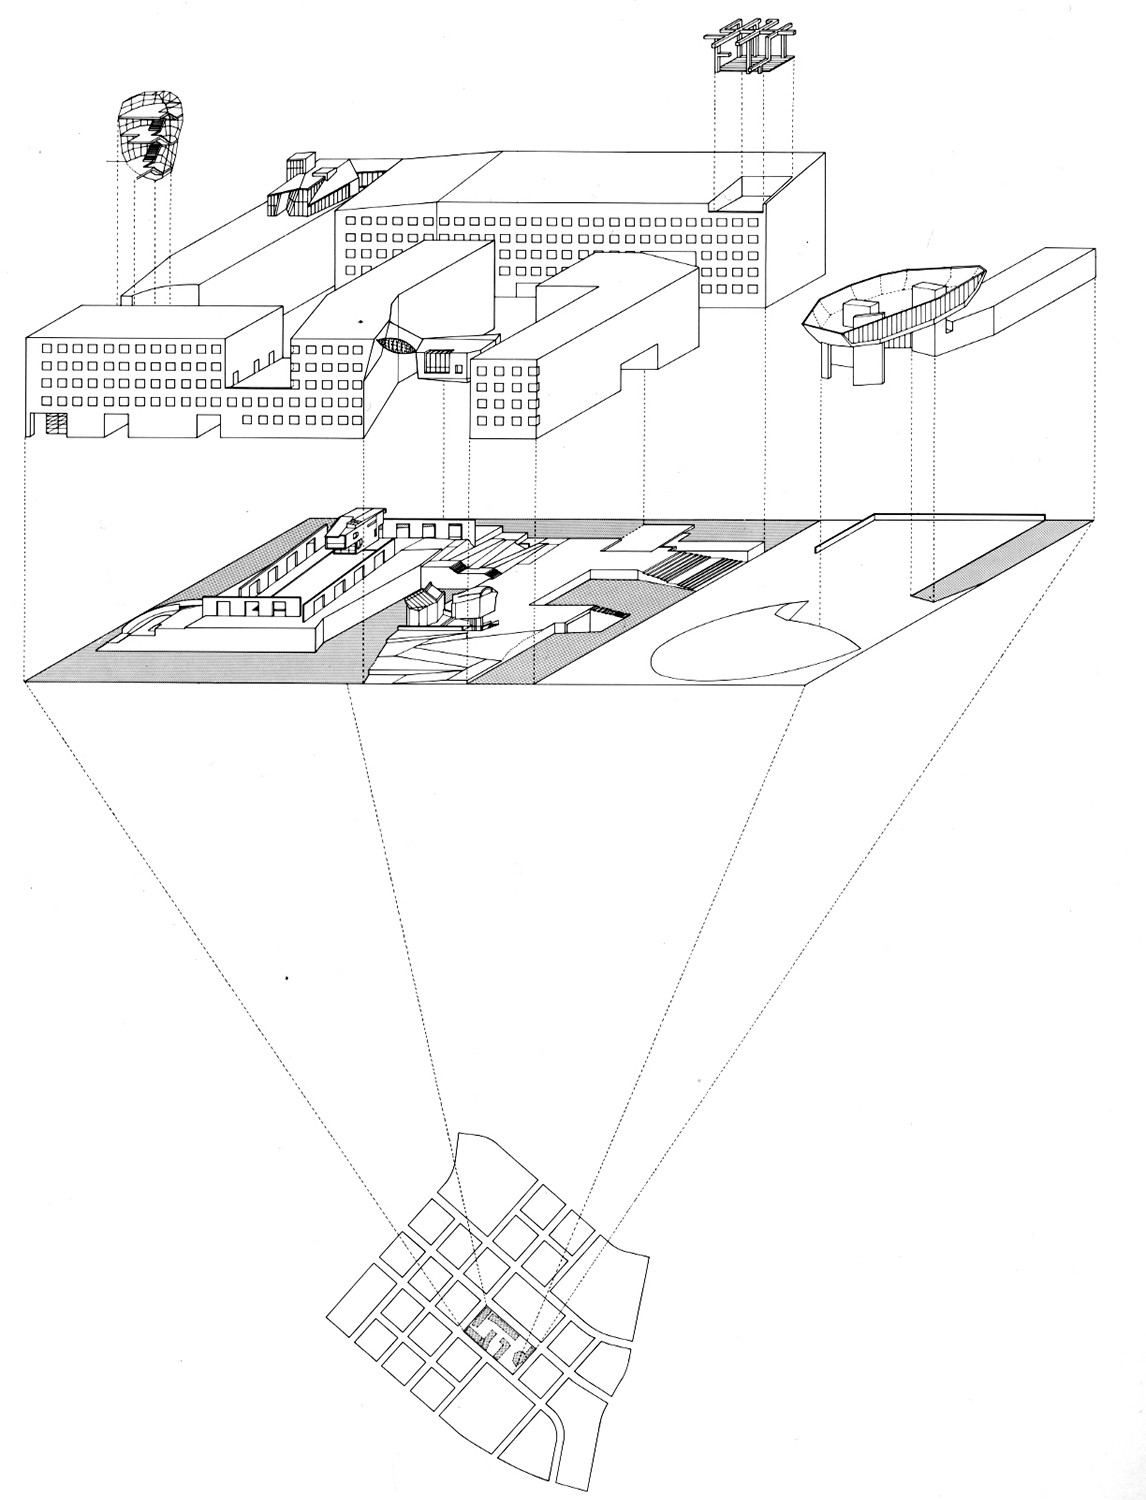 https://s3.us-east-2.amazonaws.com/steven-holl/uploads/projects/project-images/StevenHollArchitects_Makuhari_axo_WV.jpg